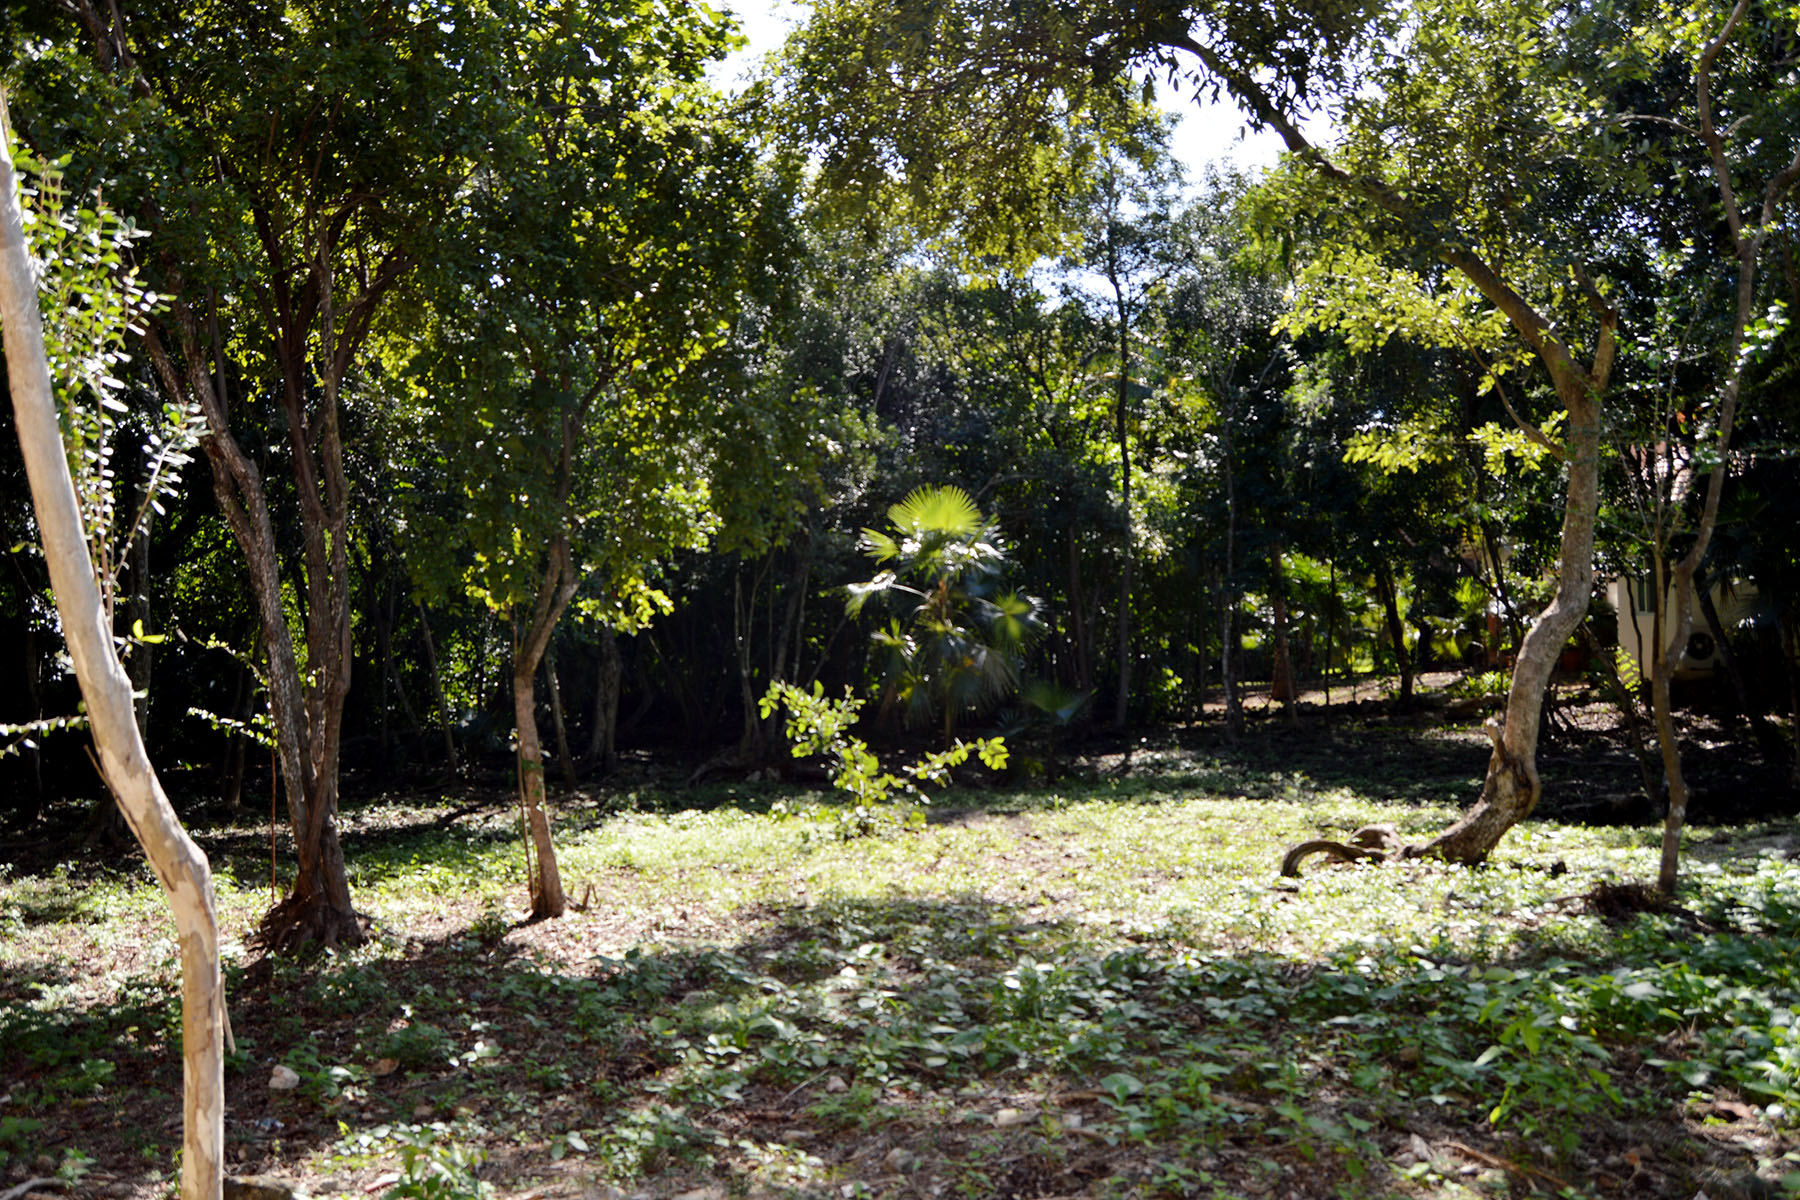 Land for Sale at 107 CLUB REAL RESIDENTIAL LOT 107 Club Real Residential Lot Retorno Copan Playa Del Carmen, Quintana Roo 77710 Mexico